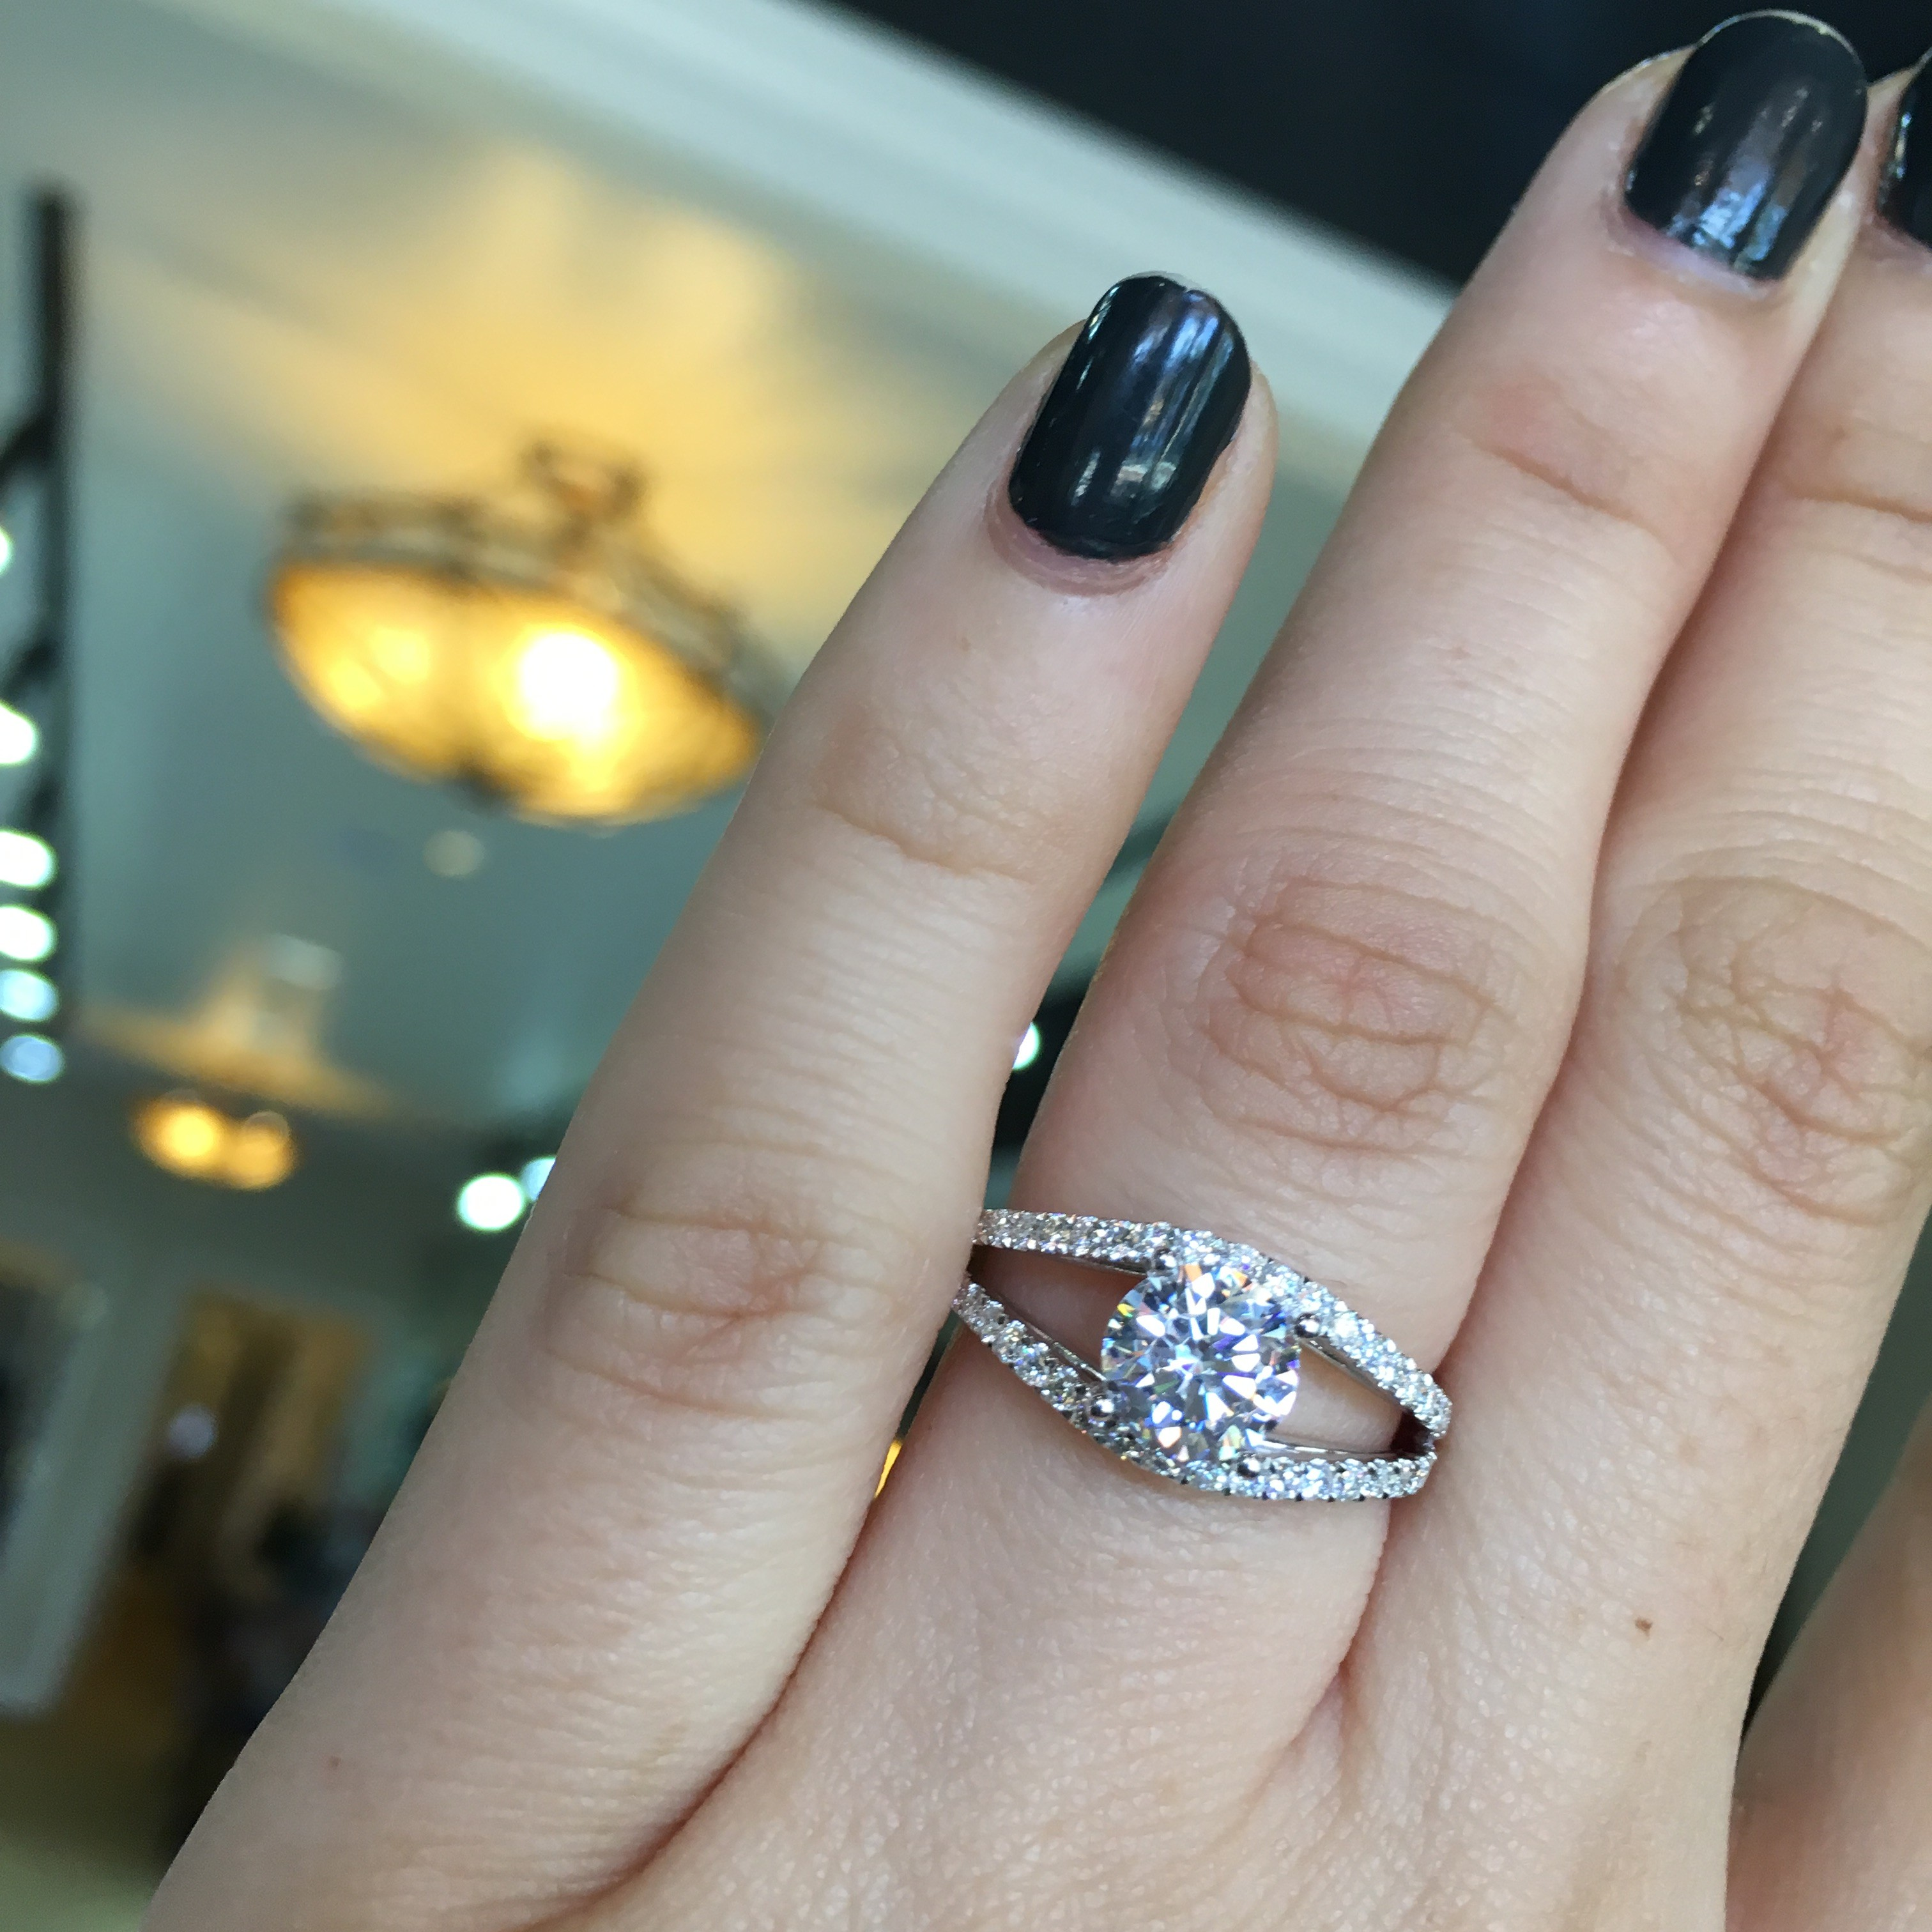 Want To Find The Perfect Ring? Take This Engagement Ring Style Quiz Now!